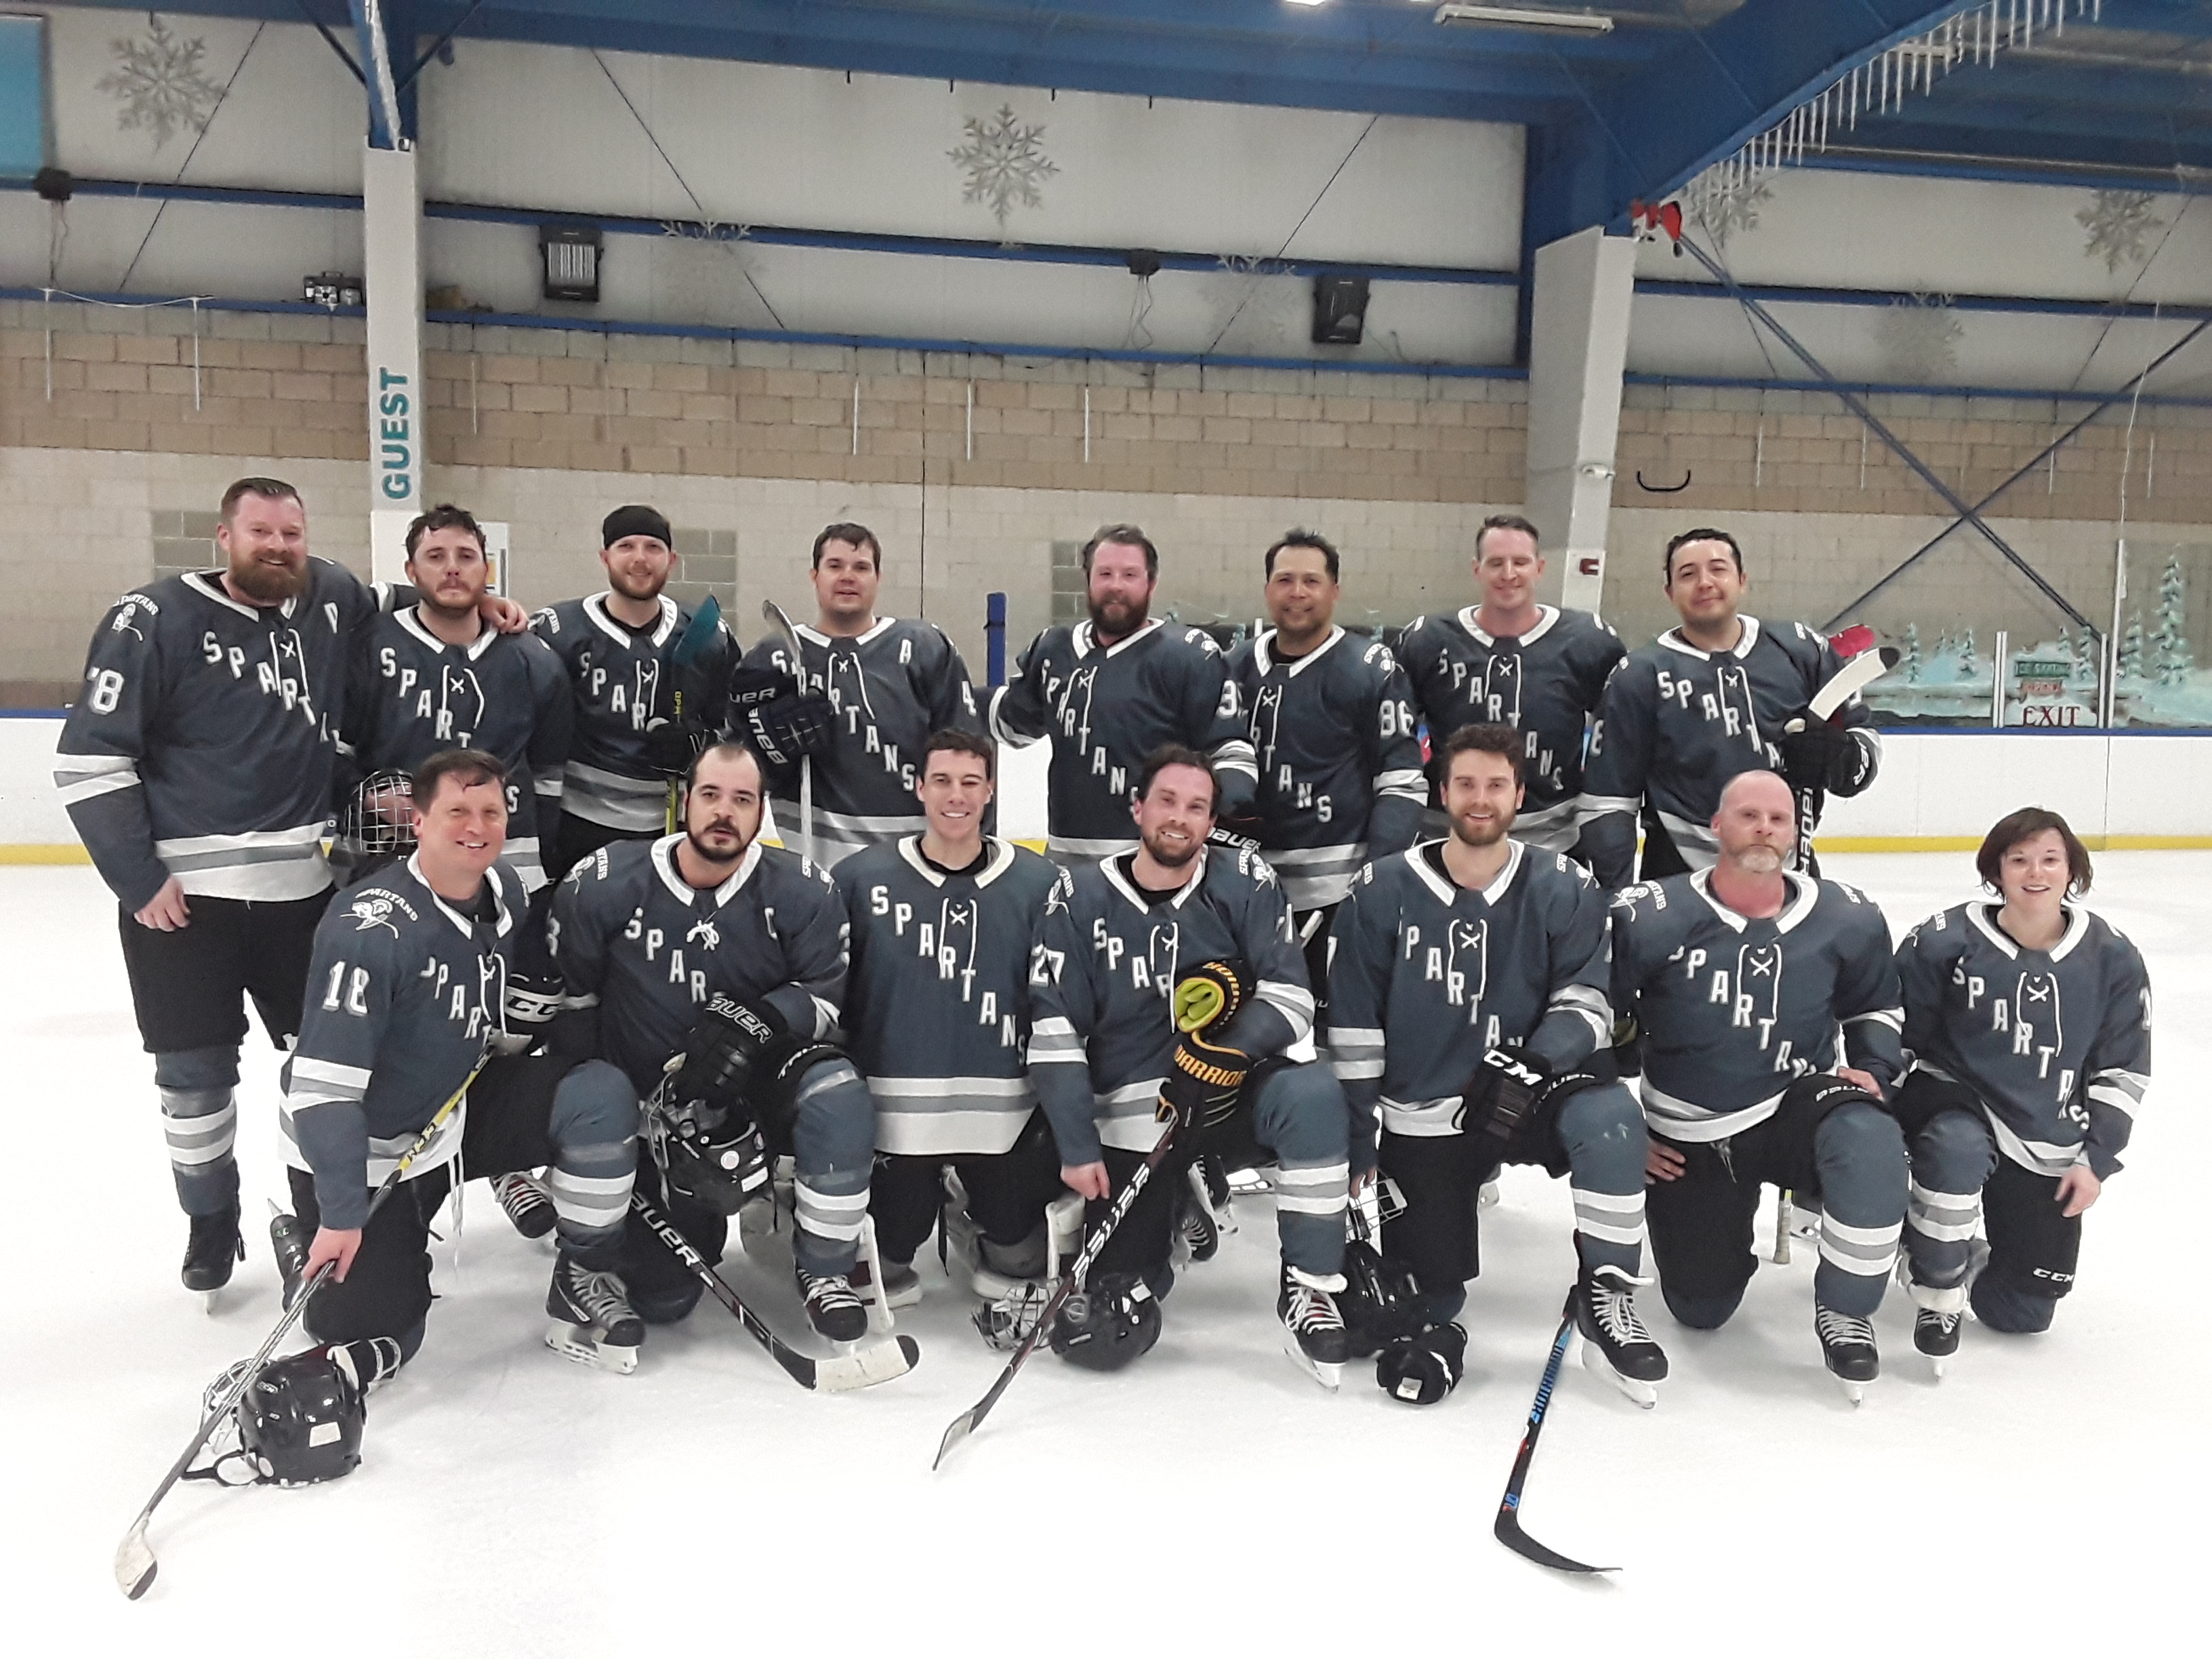 A hockey team posing for a picture on the ice